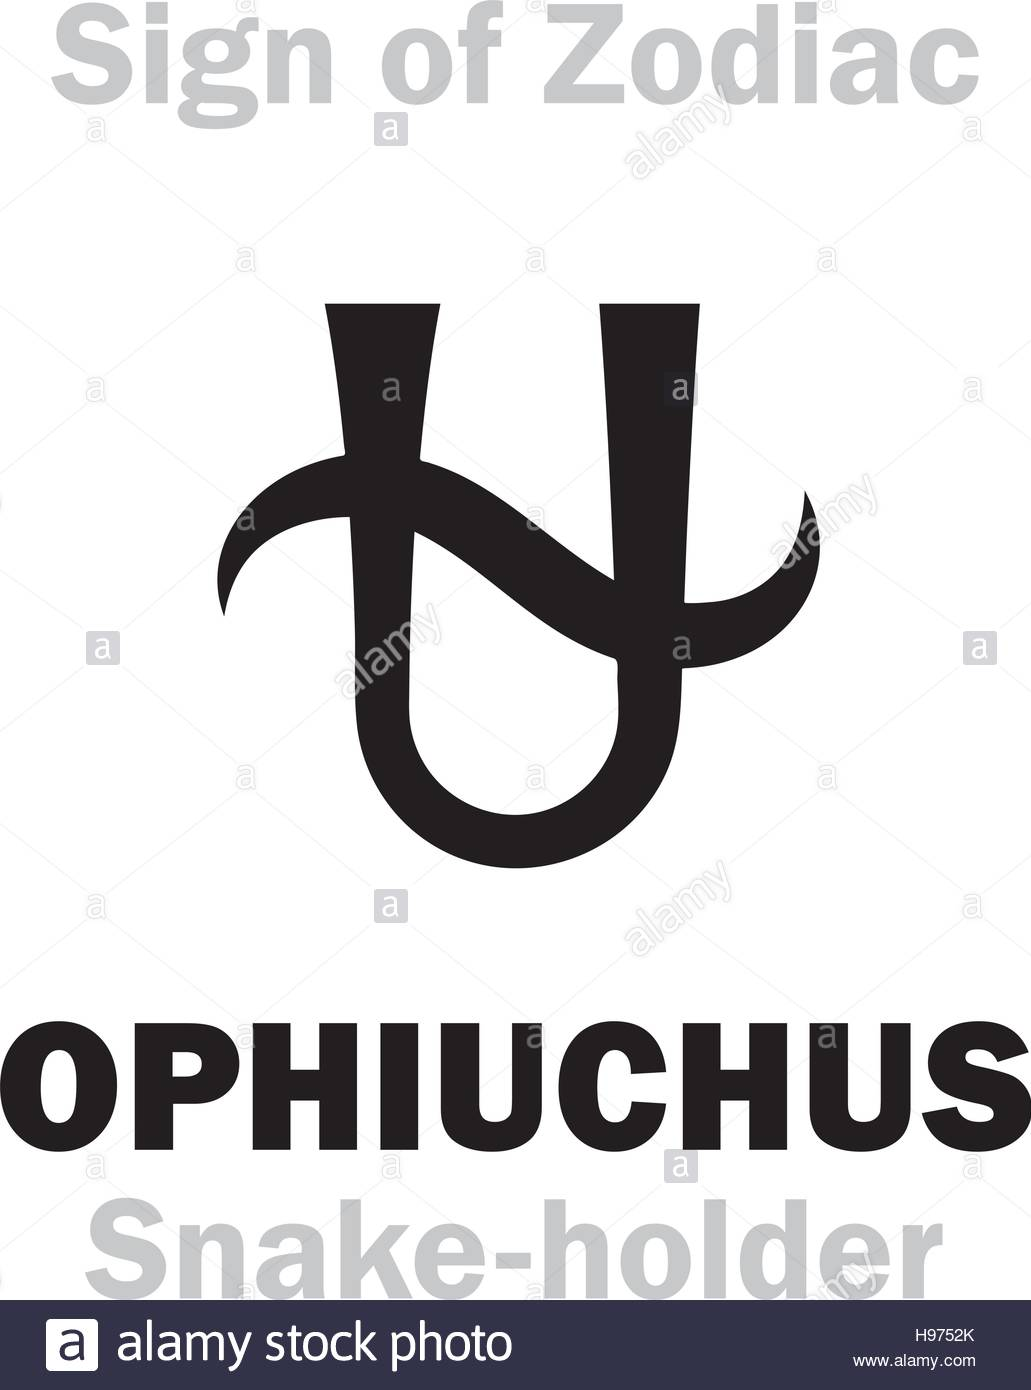 Ophiuchus Stock Photos & Ophiuchus Stock Images.